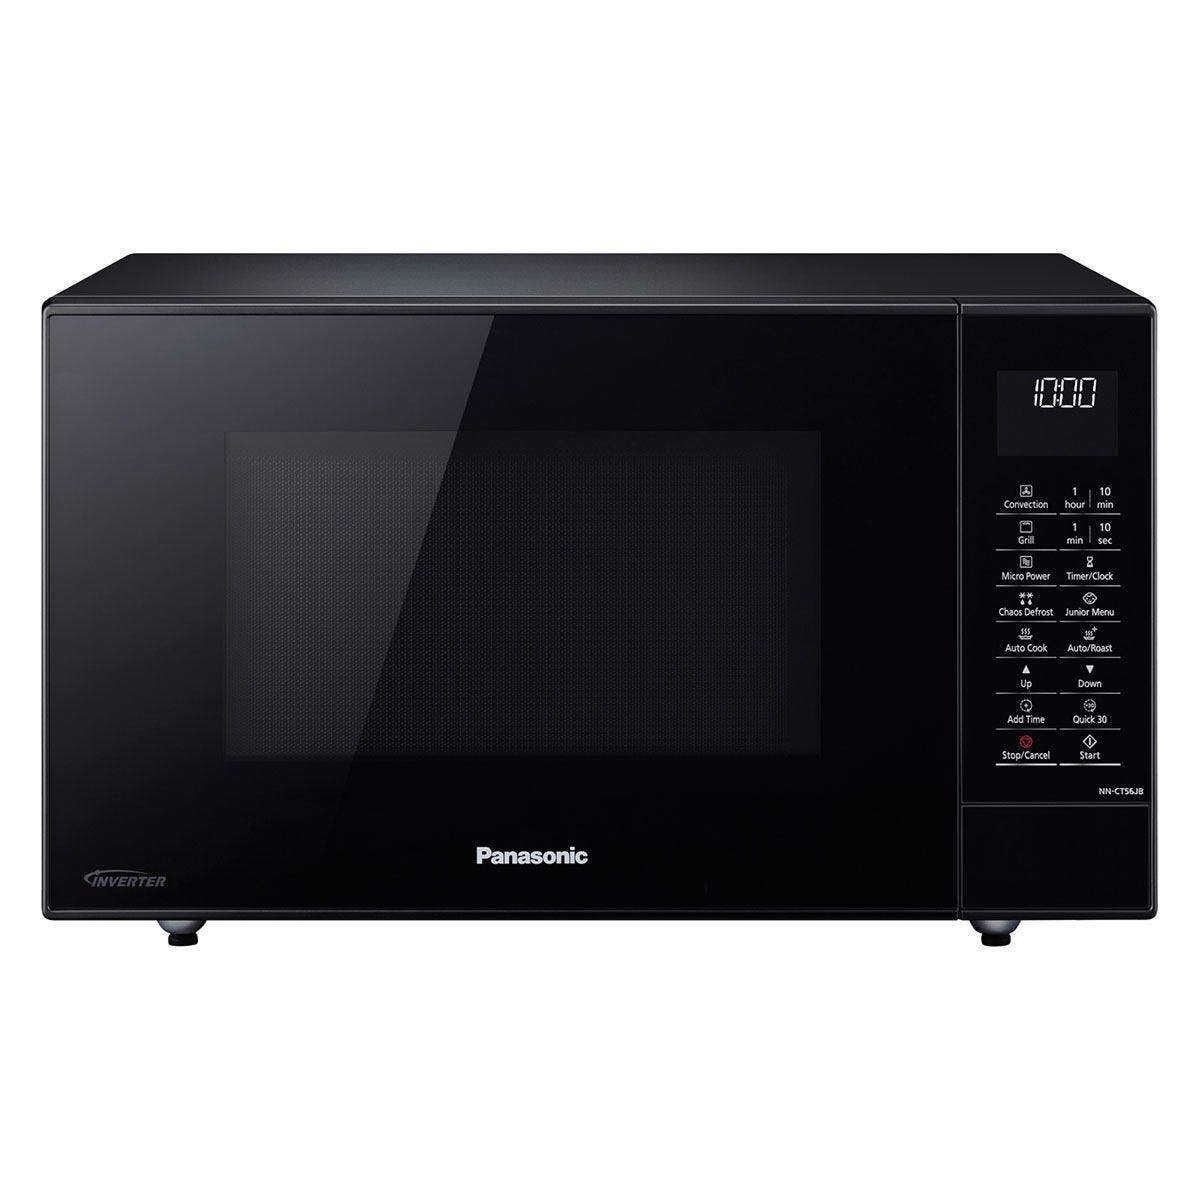 Panasonic NN-CT56JBBPQ 27L 1000W Digital Combination Inverter Microwave - Black